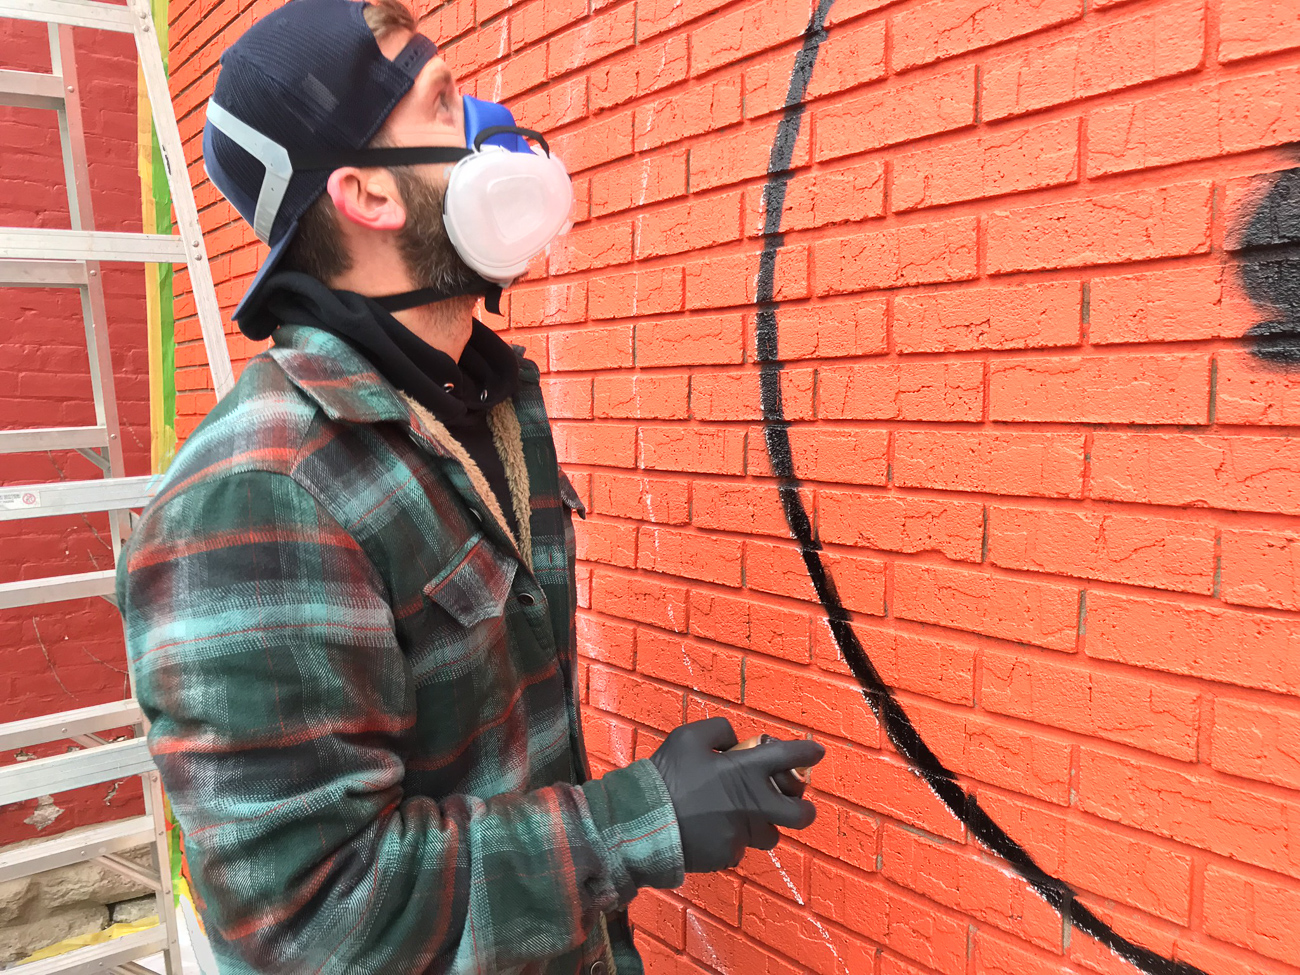 Josh Stout is determined to complete 19 murals in 2019. If you own a building or have a blank wall that would benefit from having a mural, Josh is your artist. Reach out to him at Josh@MakeshiftMammoth.com / Image: Phil Armstrong, Cincinnati Refined // Published: 8.10.19